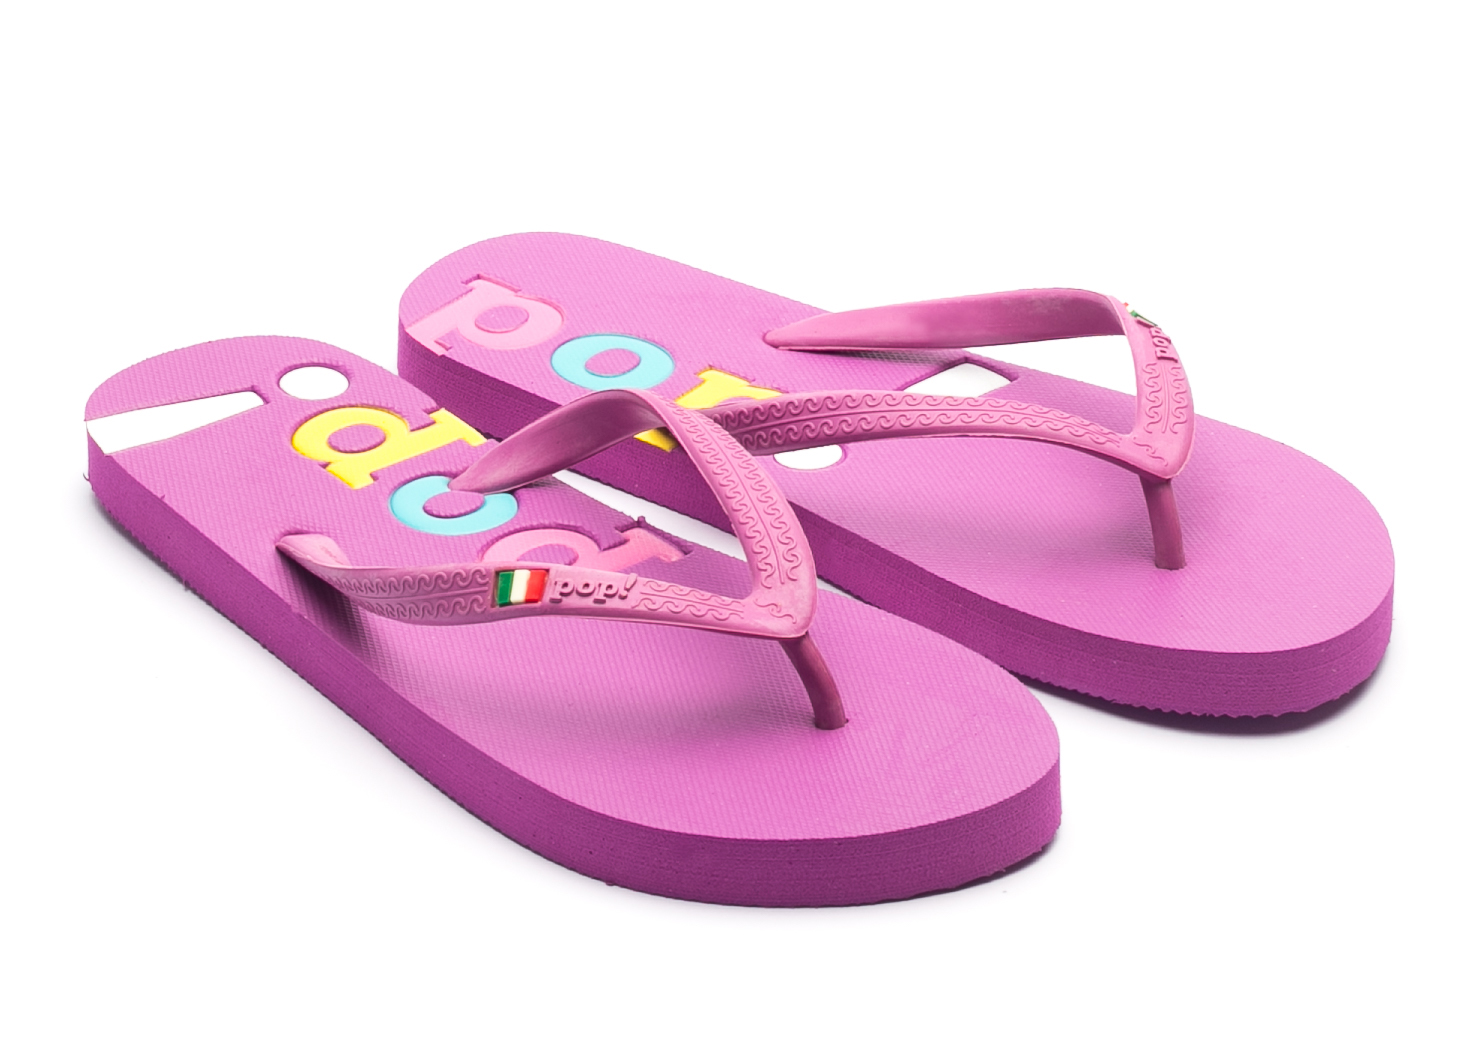 bc4640829b7e6 POP Purple Flip Flop - BRANDS